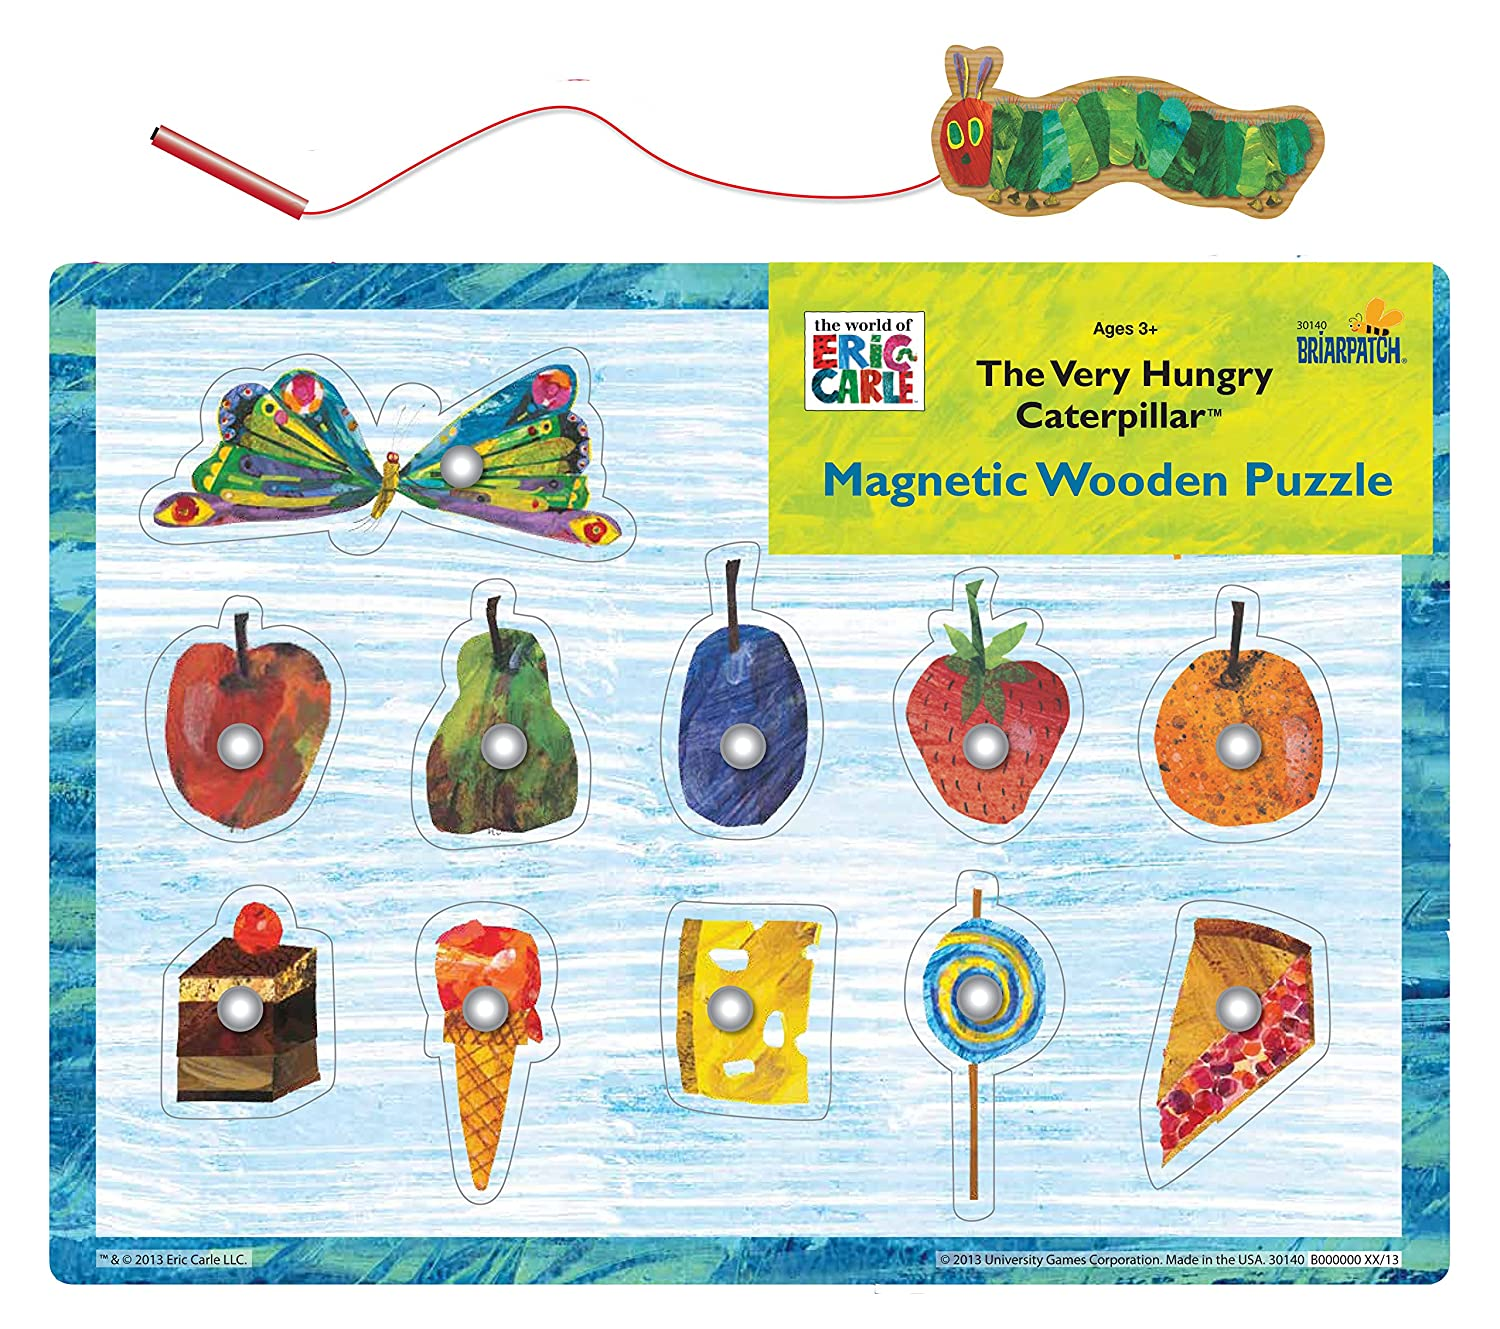 The World of Eric Carle Very Hungry Caterpillar Magnetic Wood Puzzle University Games 30140